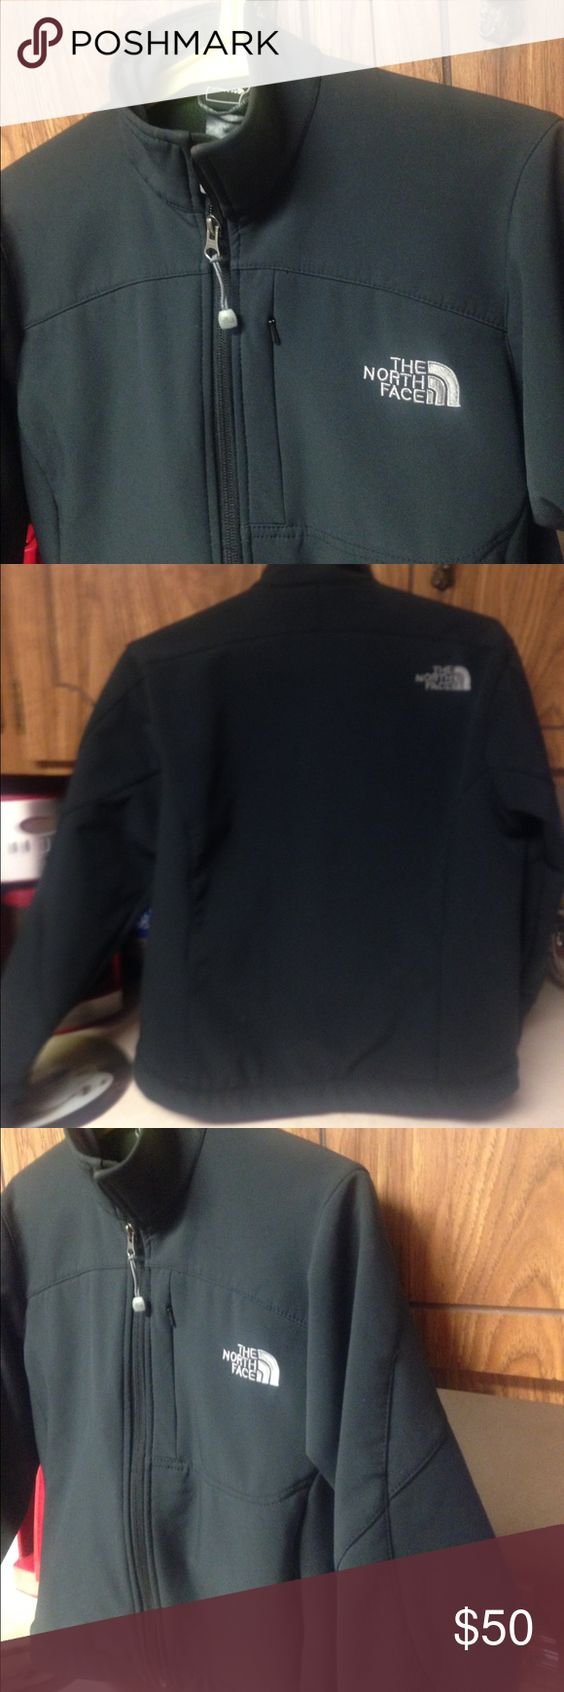 The North Face Women's Apex Bionic  Jacket Xs new condition no flaws!!! The North Face Jackets & Coats